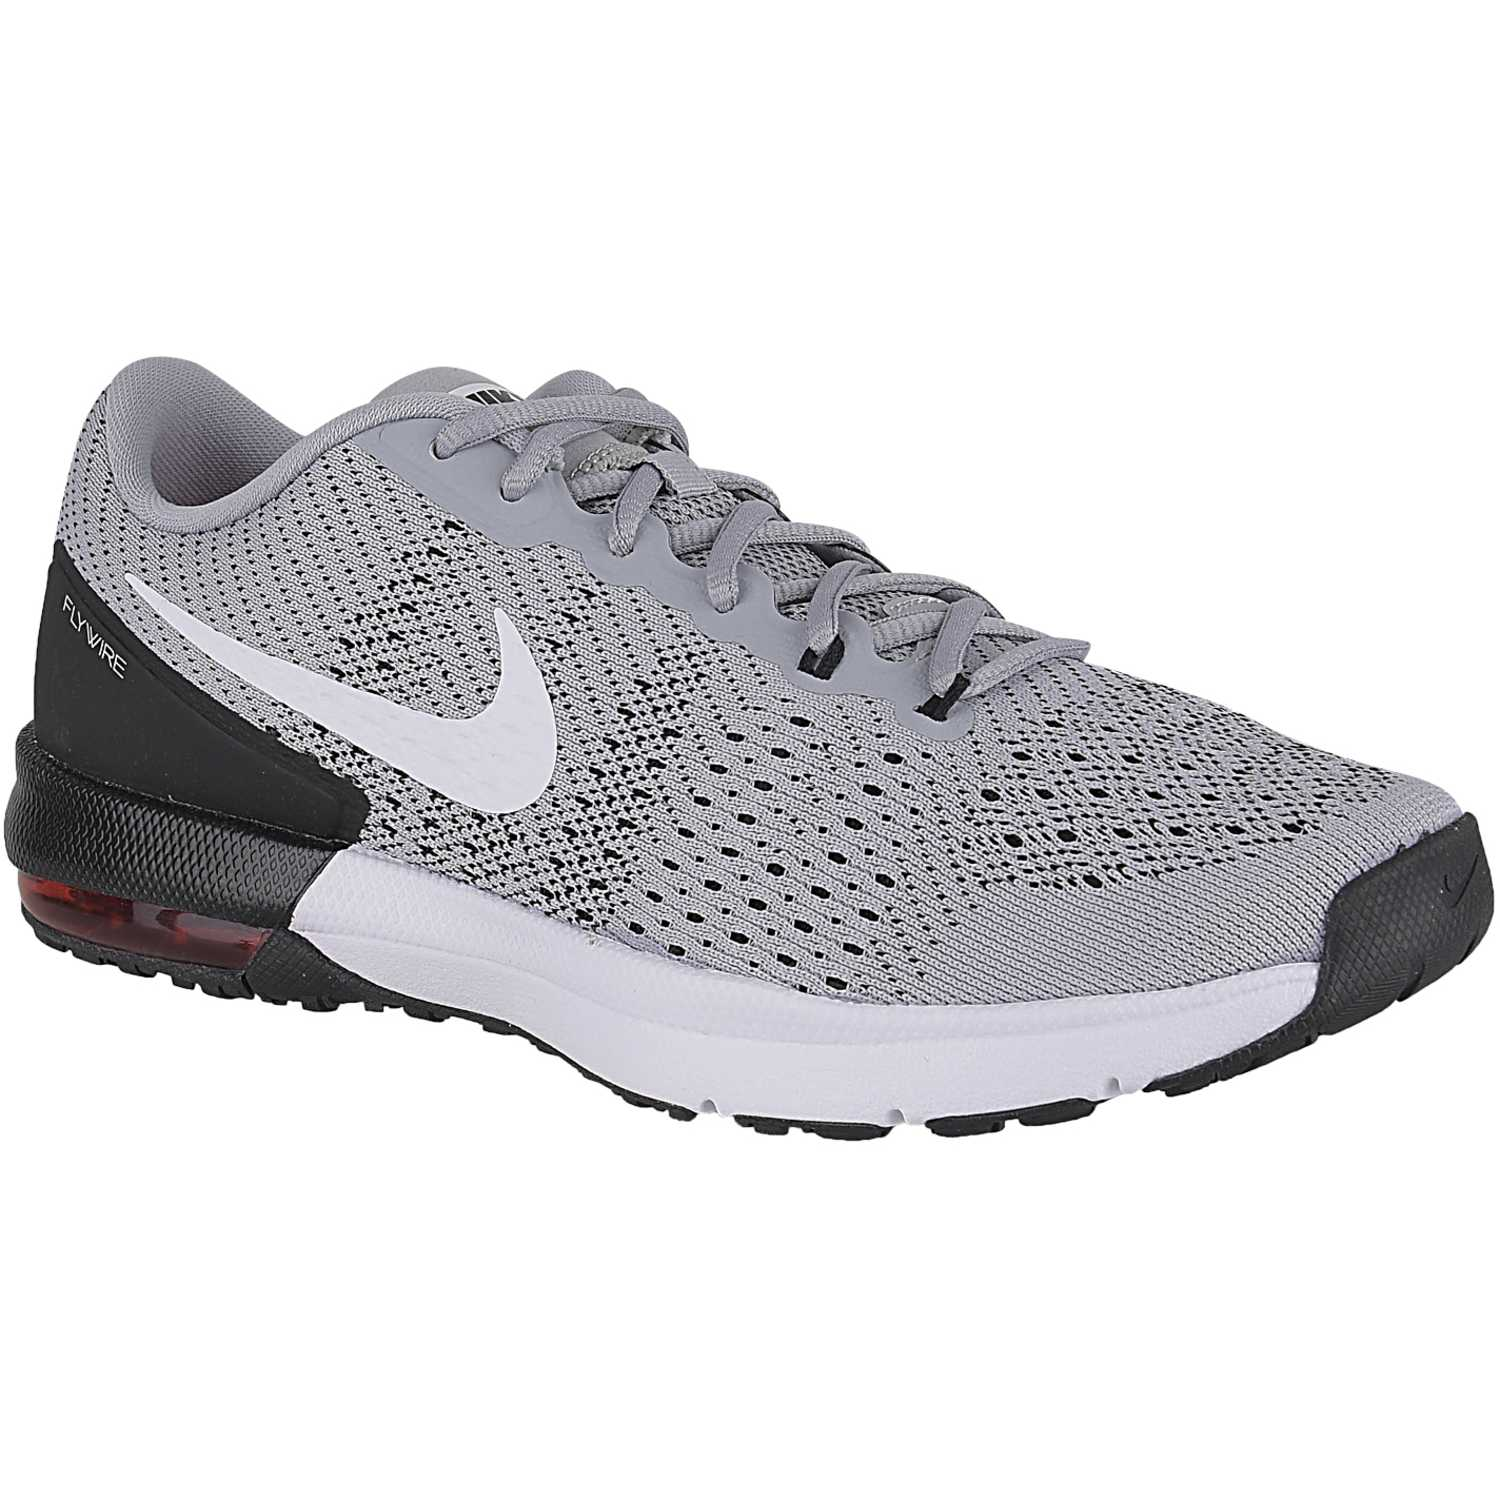 Nike air max typha Gris / negro Hombres